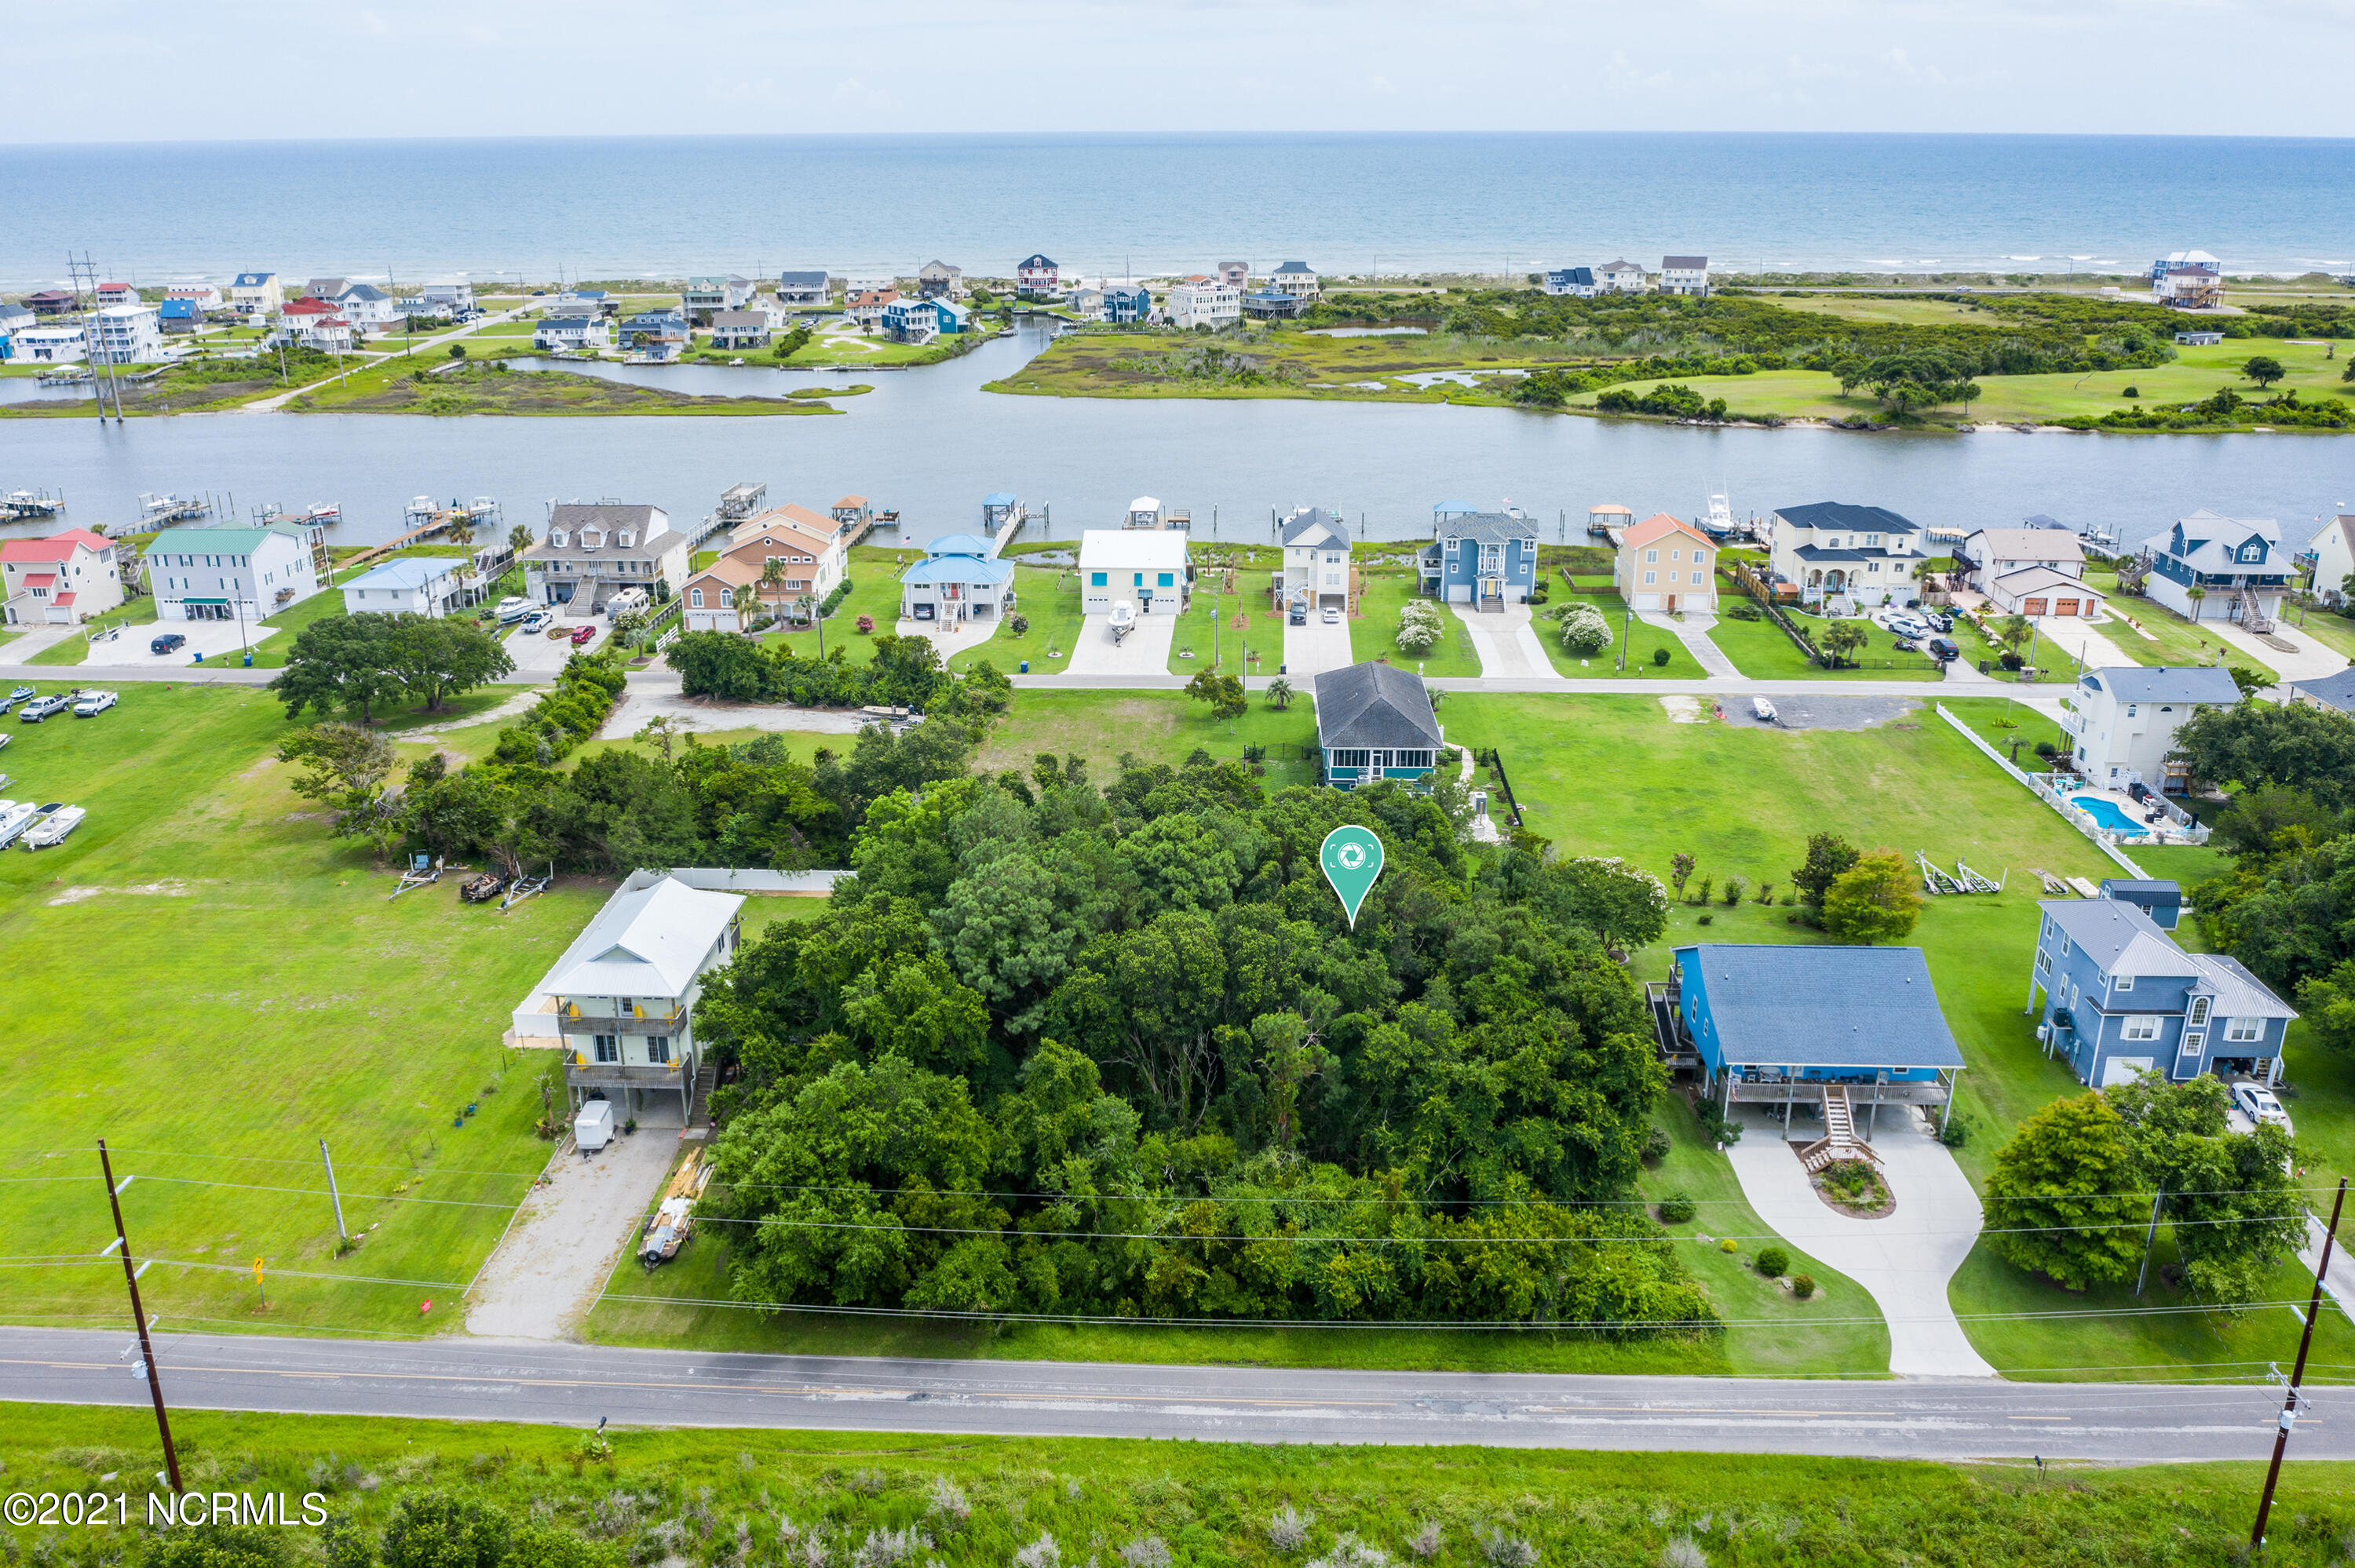 You can almost feel the ocean air as you dream of building your home with views of the intracoastal waterway. Great chance to build a home close to the beach with the convenience of the mainland.